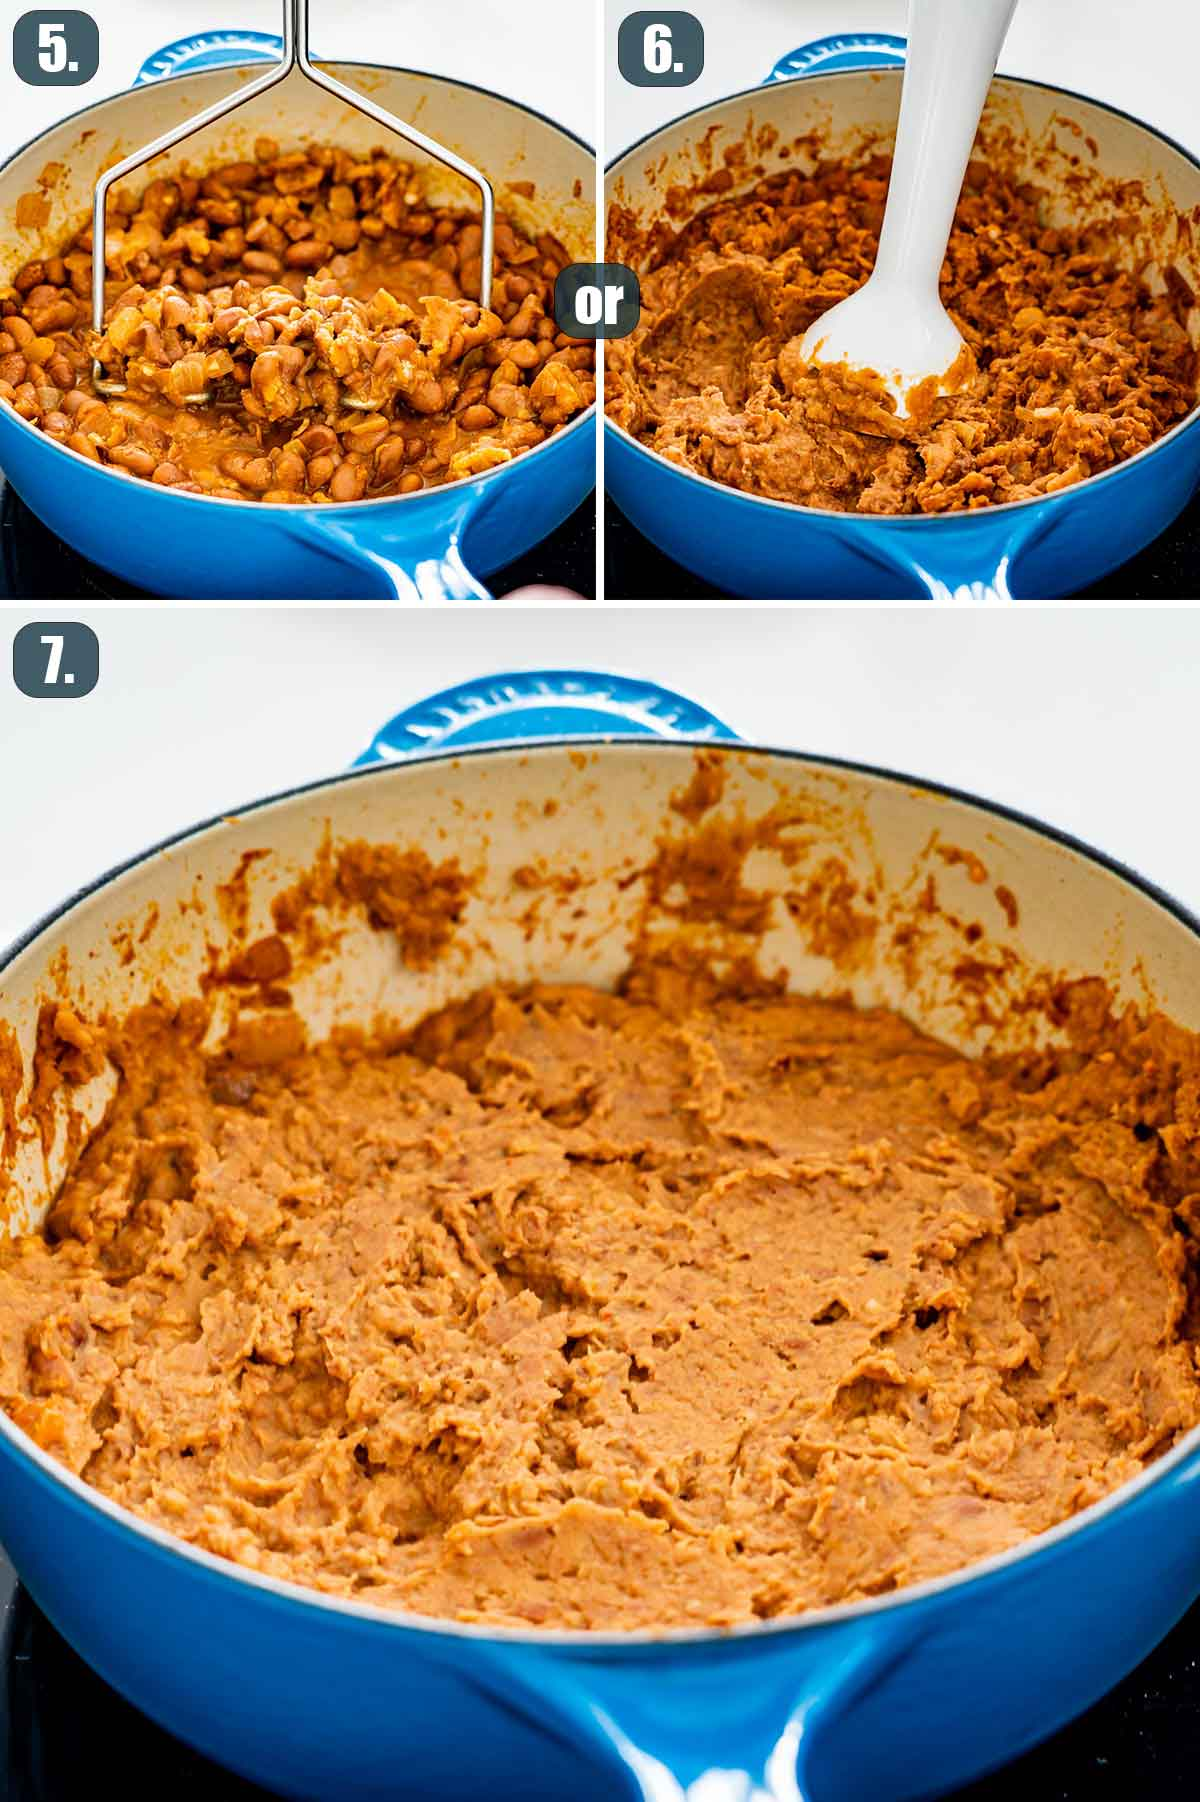 process shots showing how to mash up refried beans.